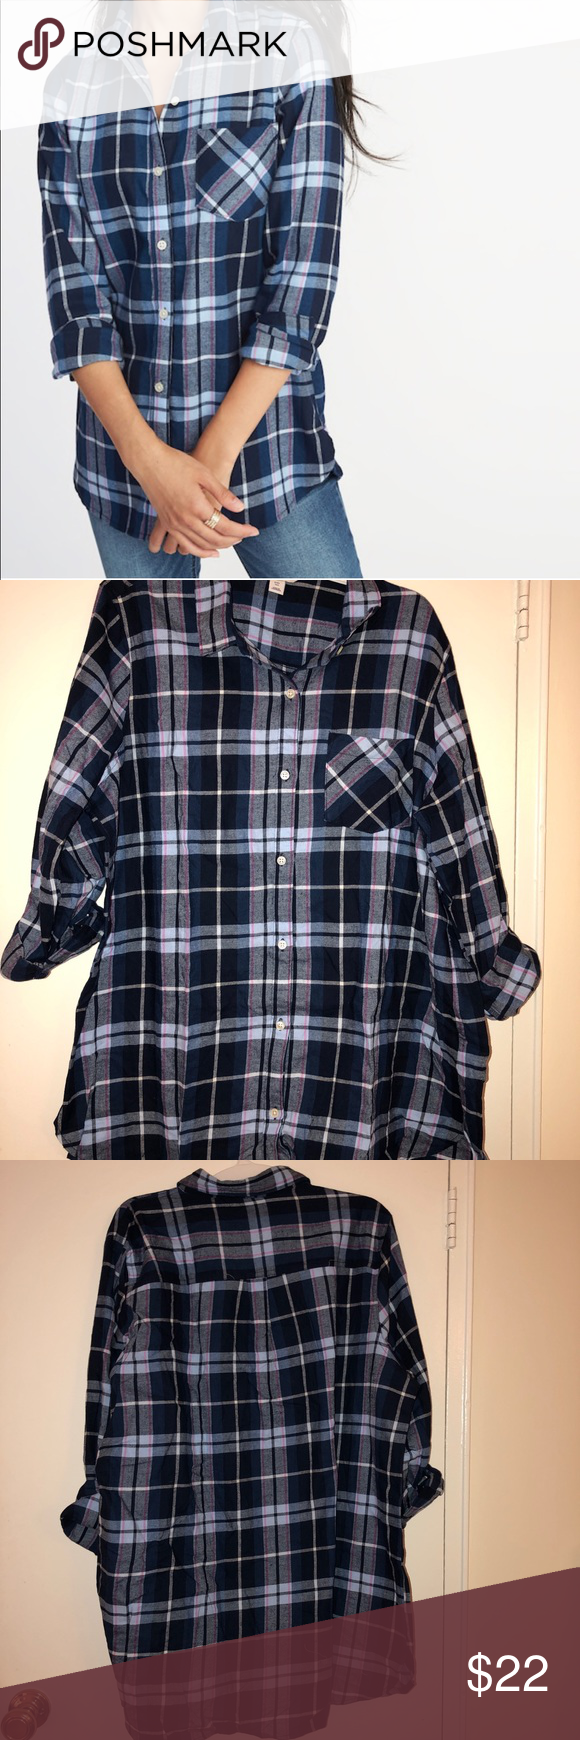 a369fd5e13f OLD NAVY Relaxed Twill Tunic Shirt for Women OLD NAVY Relaxed Twill Tunic  Shirt for Women Old Navy Tops Button Down Shirts